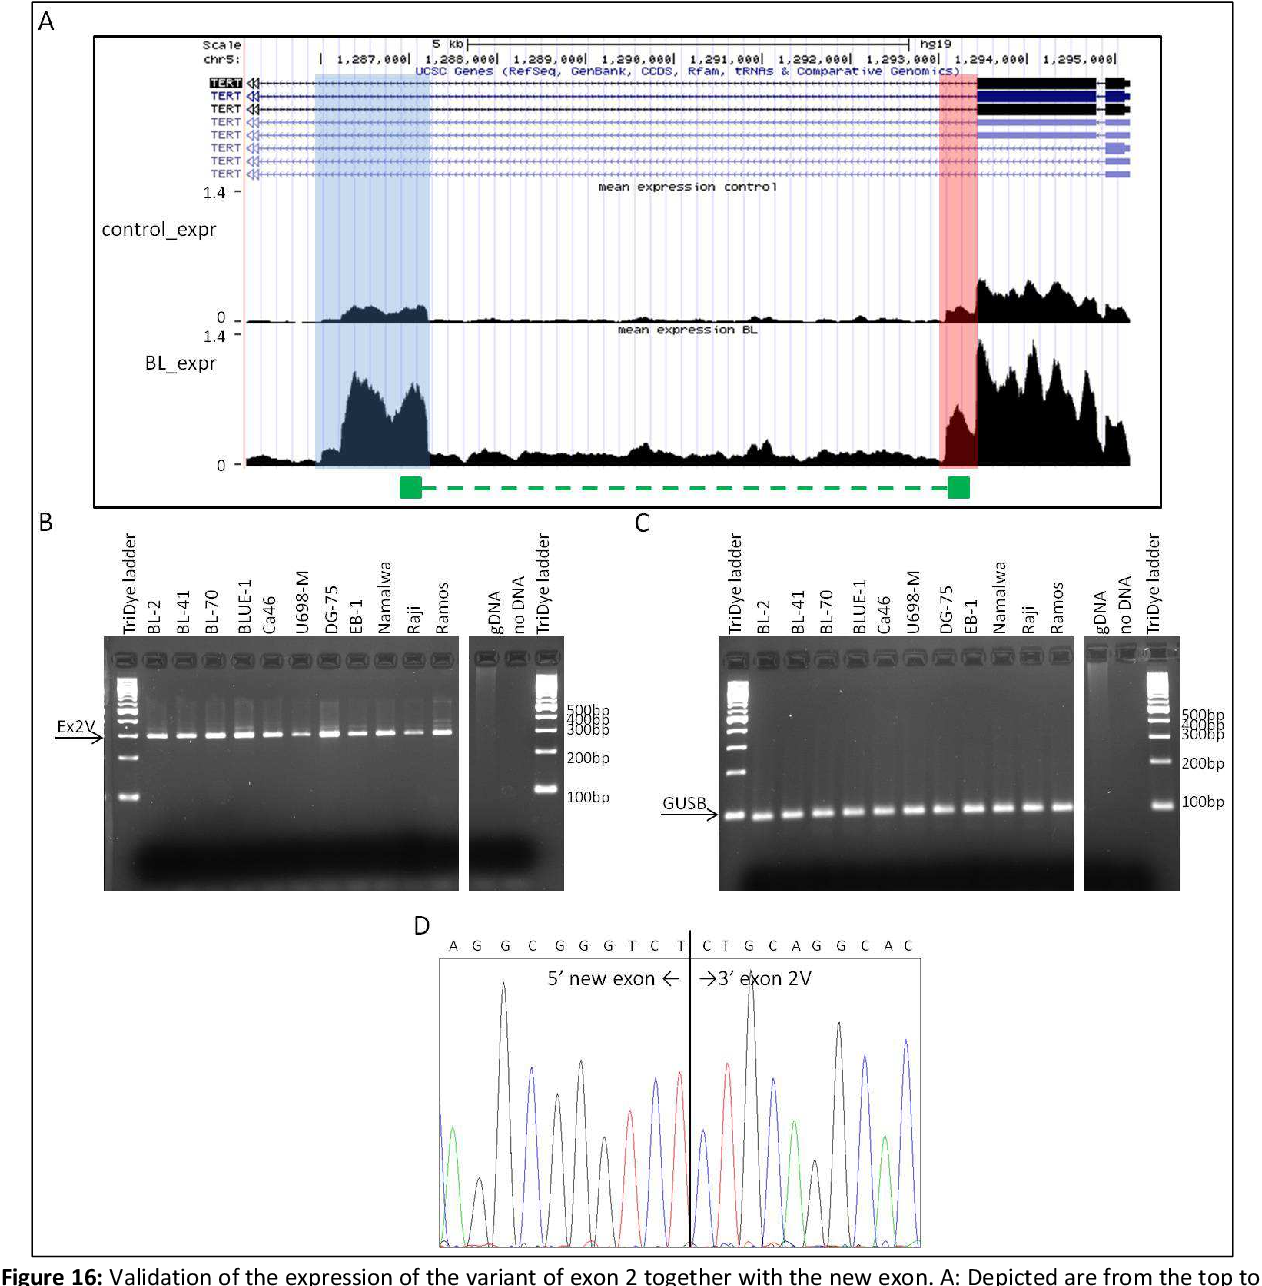 Figure 16: Validation of the expression of the variant of exon 2 together with the new exon. A: Depicted are from the top to the bottom: scale bar in kb, genome base position in bp, the UCSC gene track showing all transcripts of the TERT gene (reading direction from the right (exon 1) to the left), and the mean read density obtained in the ICGC MMML-Seq project given as reads per million of the transcriptome data of all analyzed GCB-cell samples (control_expr) and BL samples (BL_expr) as well as a schematic overview on the location of the PCR product with regard to the TERT gene. In latter track the green symbol represents the PCR product (296 bp) detecting expression of exon 2V together with the new exon. Highlighted in blue is the newly identified exon and highlighted in red is 3'end of exon 2V which is visible in the ICGC MMML-Seq samples but is not annotated yet in the UCSC gene track. B: Agarose gel analysis depicts expression of the exon 2V together with the new exon performed on eleven BL cell lines. C: Agarose gel analysis of the reference gene GUSB (99 bp PCR product) in the BL cell lines. D: Electropherogram showing exon borders of the 5' end of the new exon and 3' end of exon 2V. Genomic DNA (gDNA) and water (no DNA) were used as negative controls. The arrows indicate the band corresponding to the respective size of the PCR products.